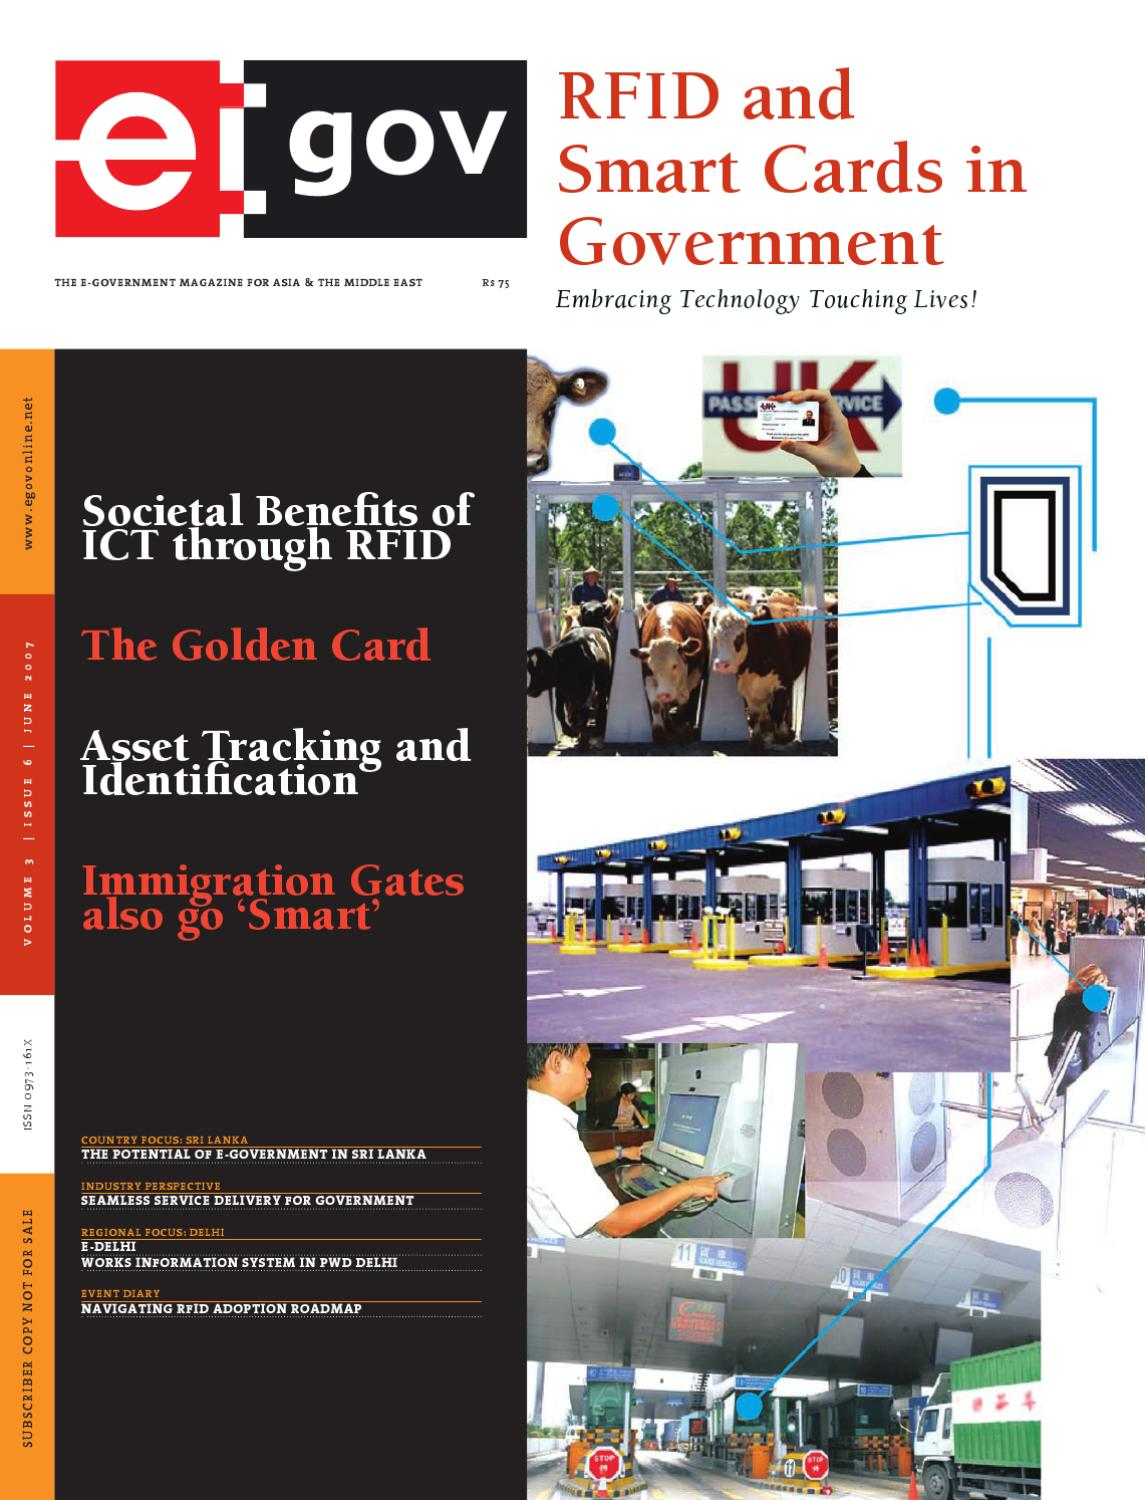 Rfid And Smart Cards In Government June 2007 Issue By Egov Magazine Tuned Circuit Value Switching Electrical Engineering Stack Elets Technomedia Pvt Ltd Issuu